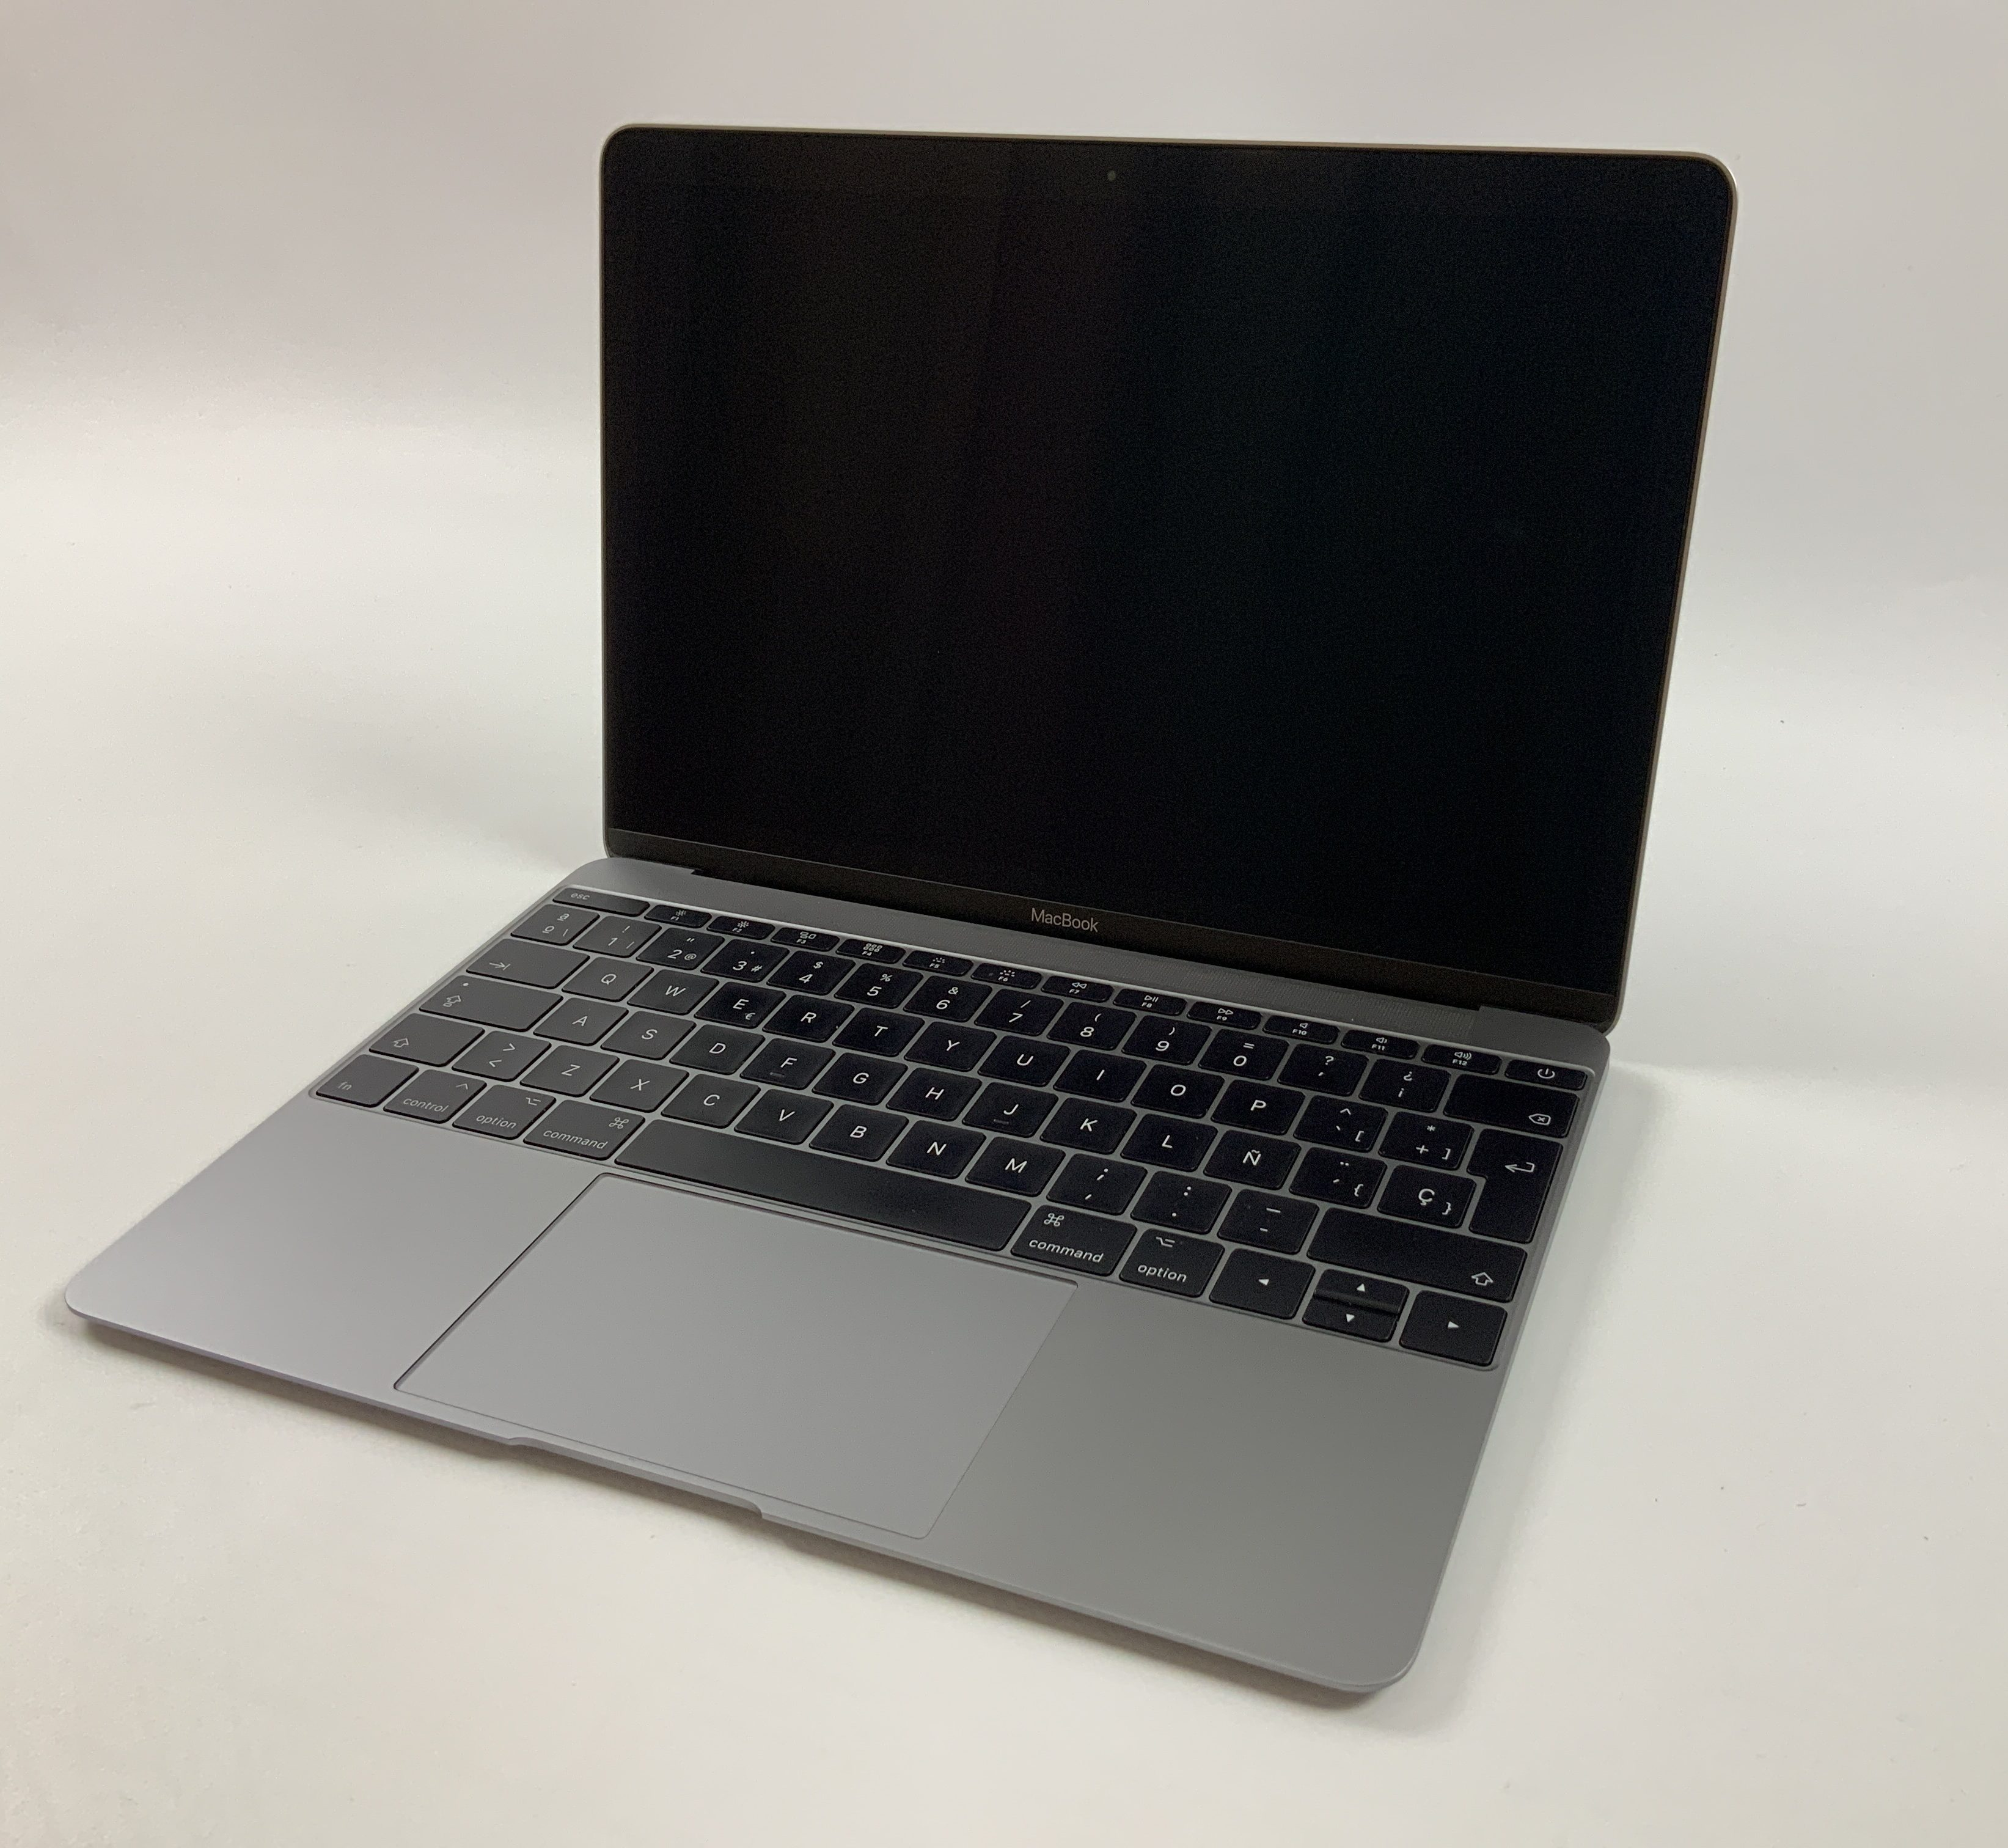 "MacBook 12"" Mid 2017 (Intel Core i7 1.4 GHz 16 GB RAM 512 GB SSD), Space Gray, Intel Core i7 1.4 GHz, 16 GB RAM, 512 GB SSD, imagen 1"